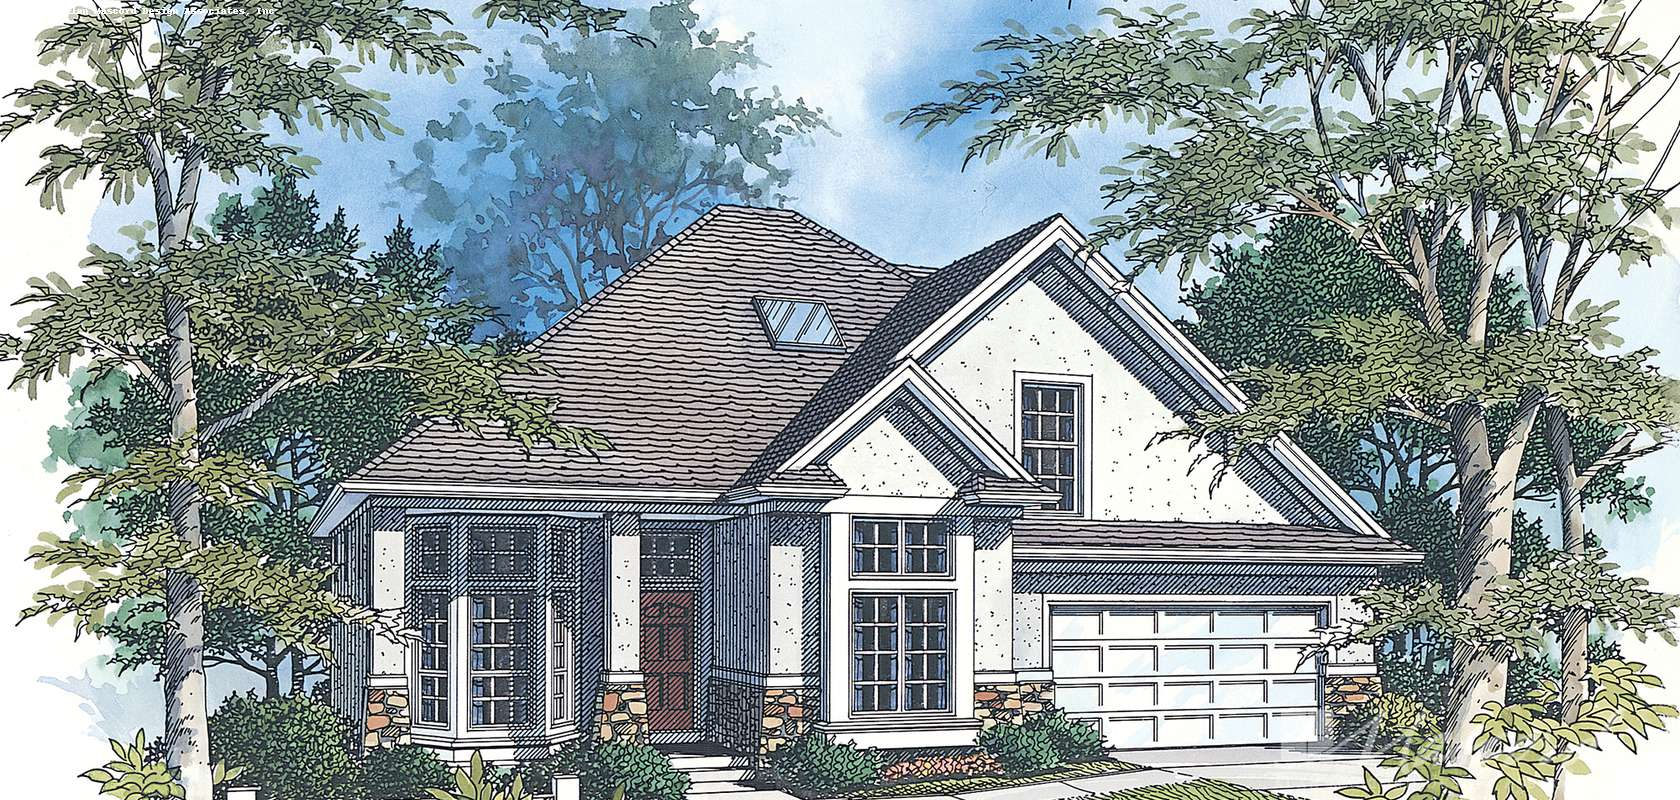 Mascord House Plan 2269BU: The Carville